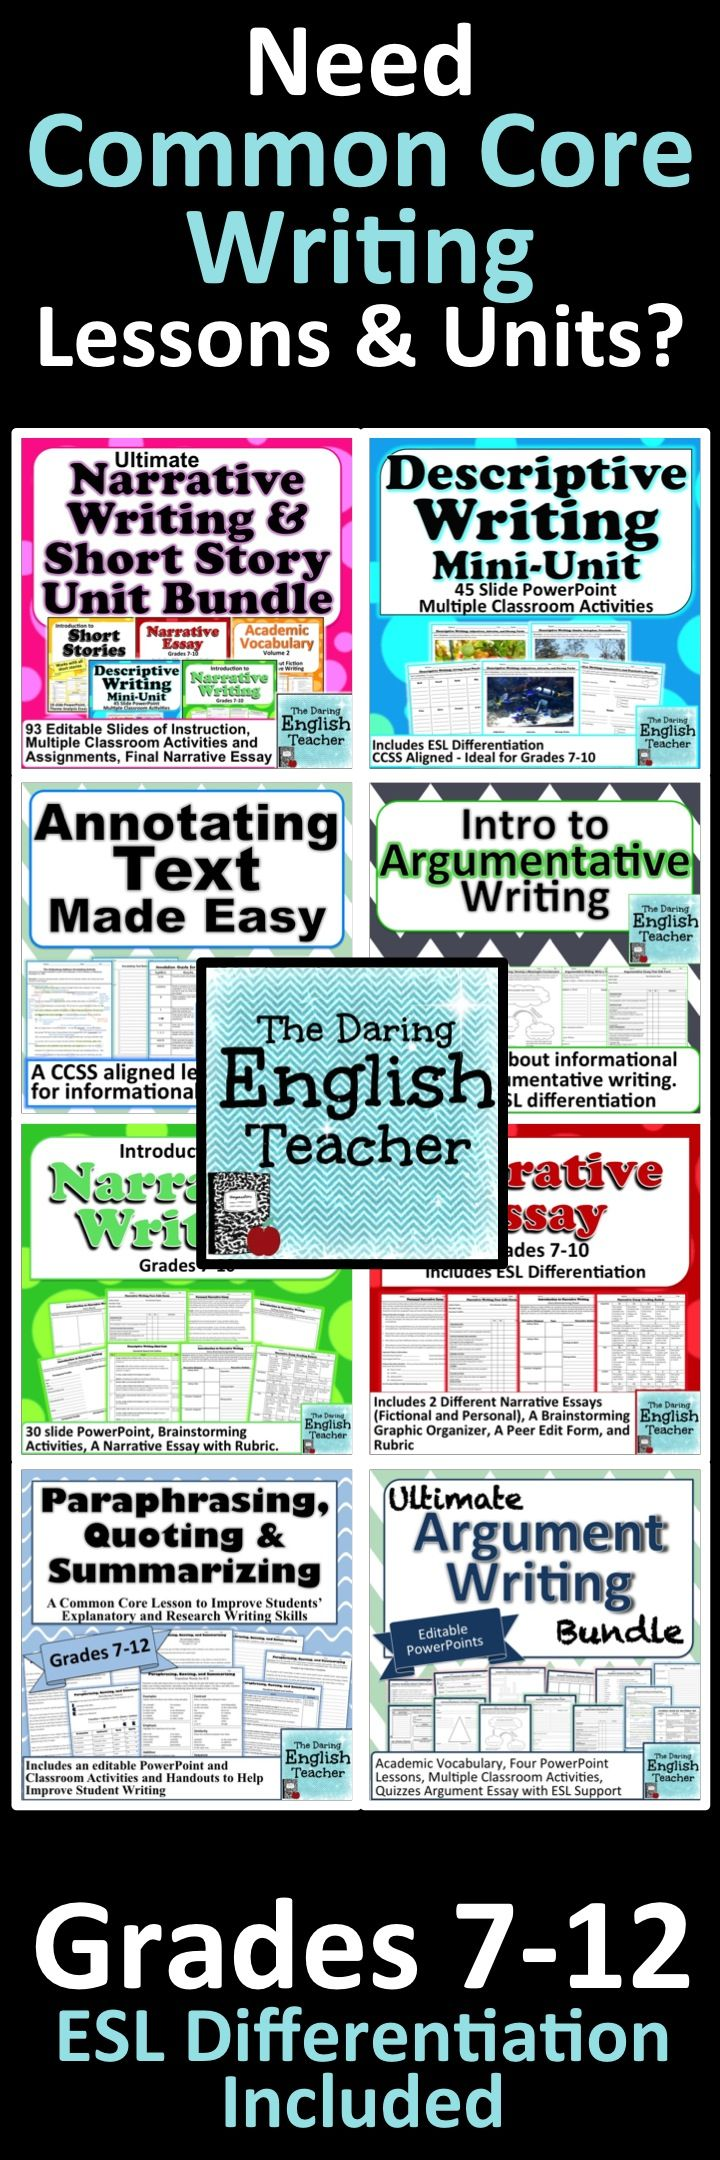 9 best Active Learning images on Pinterest | School, Spanish ...